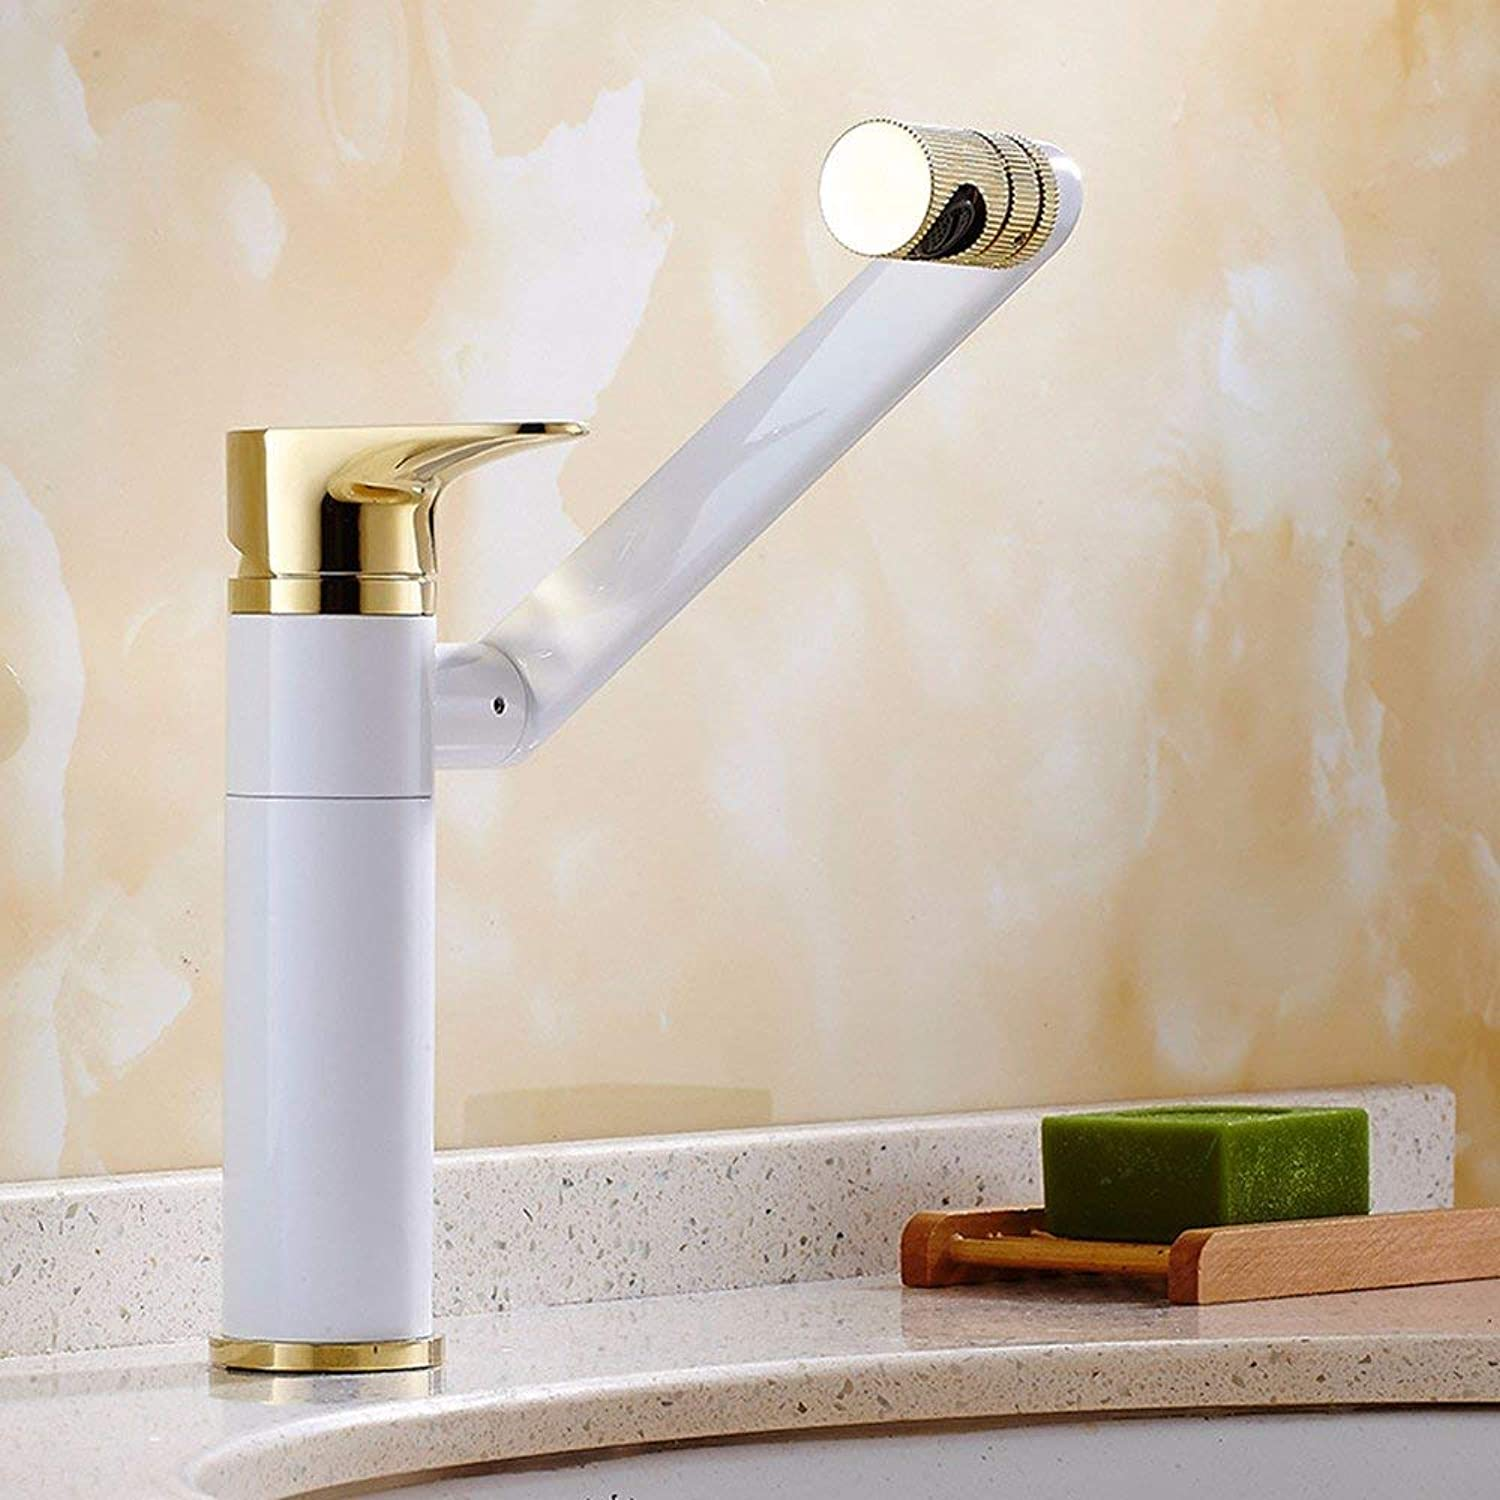 Oudan Copper Single handle washbasin kitchen Hot and cold Single hole bathroom Faucet